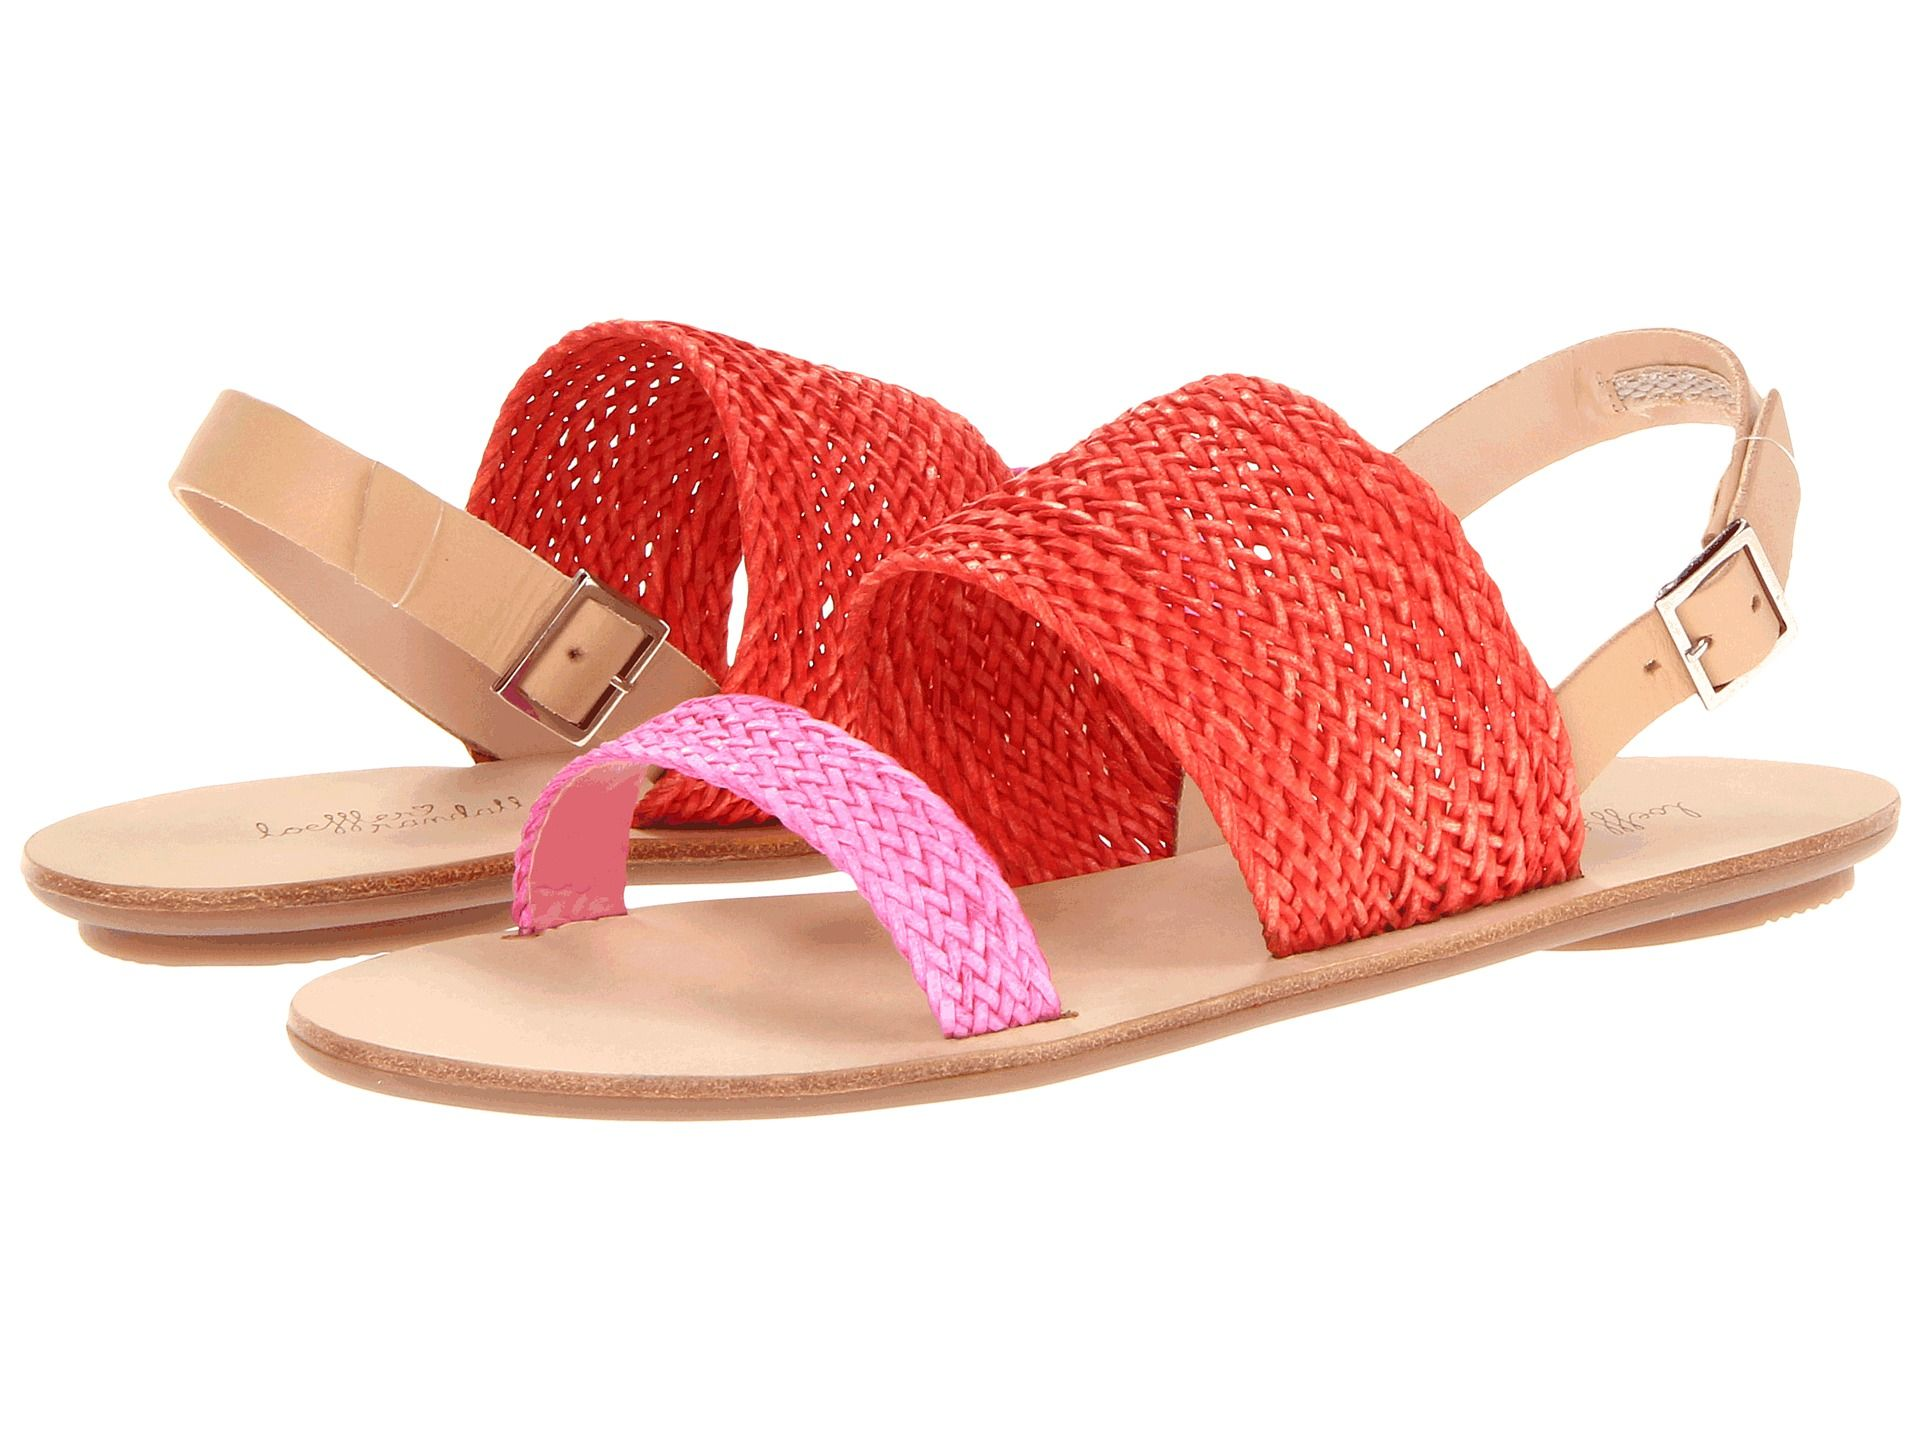 Red And Bubble Gum Pink Sandals Sandals Summer Trending